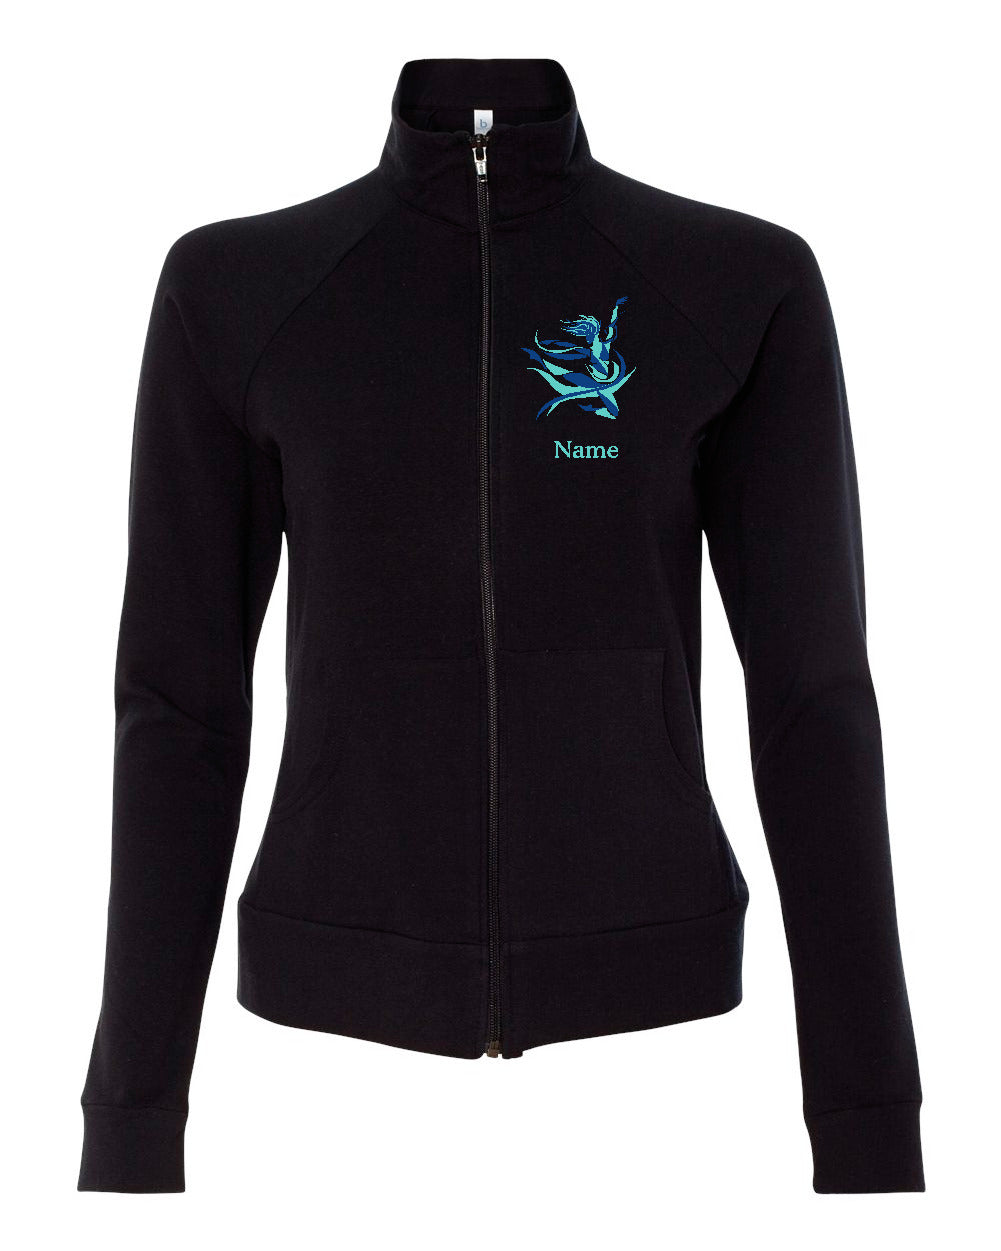 Tracy Academy of Dance Boxercraft Jacket